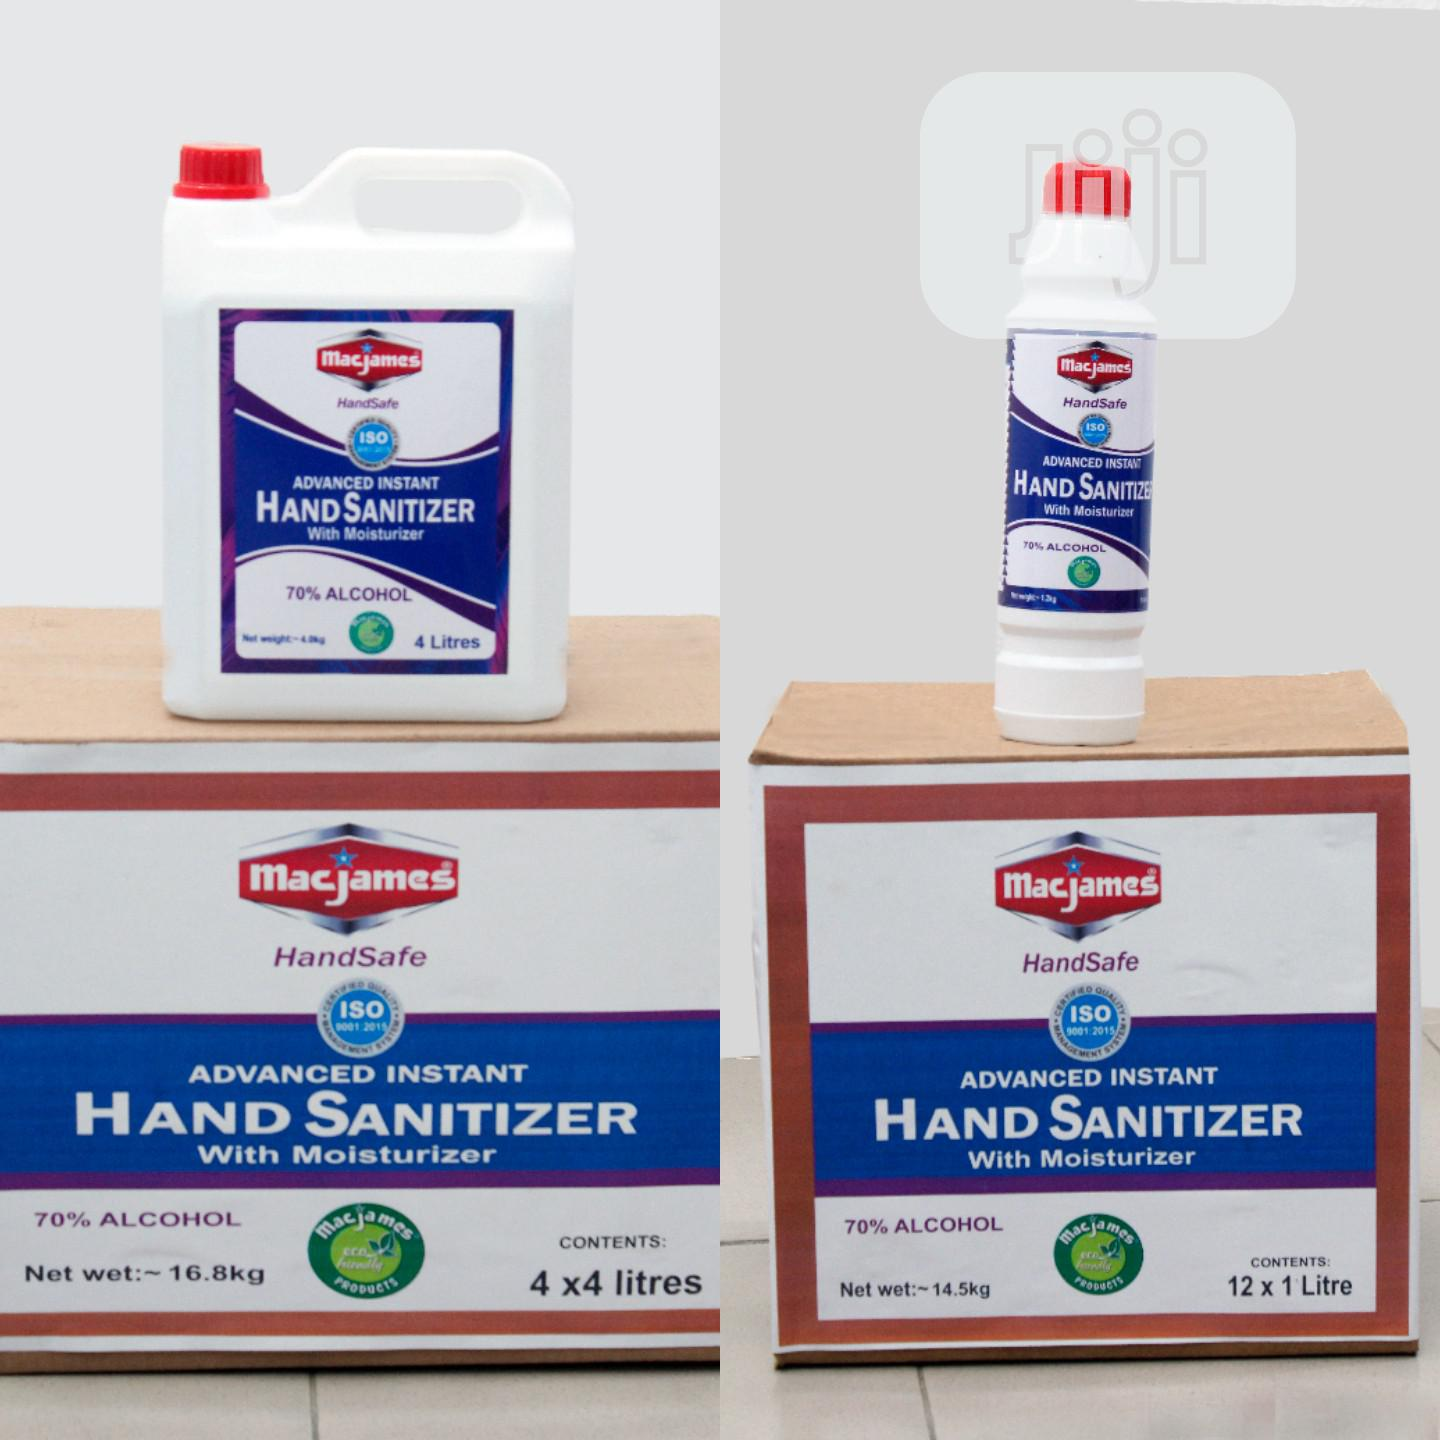 Advance Instant Hand Sanitizer